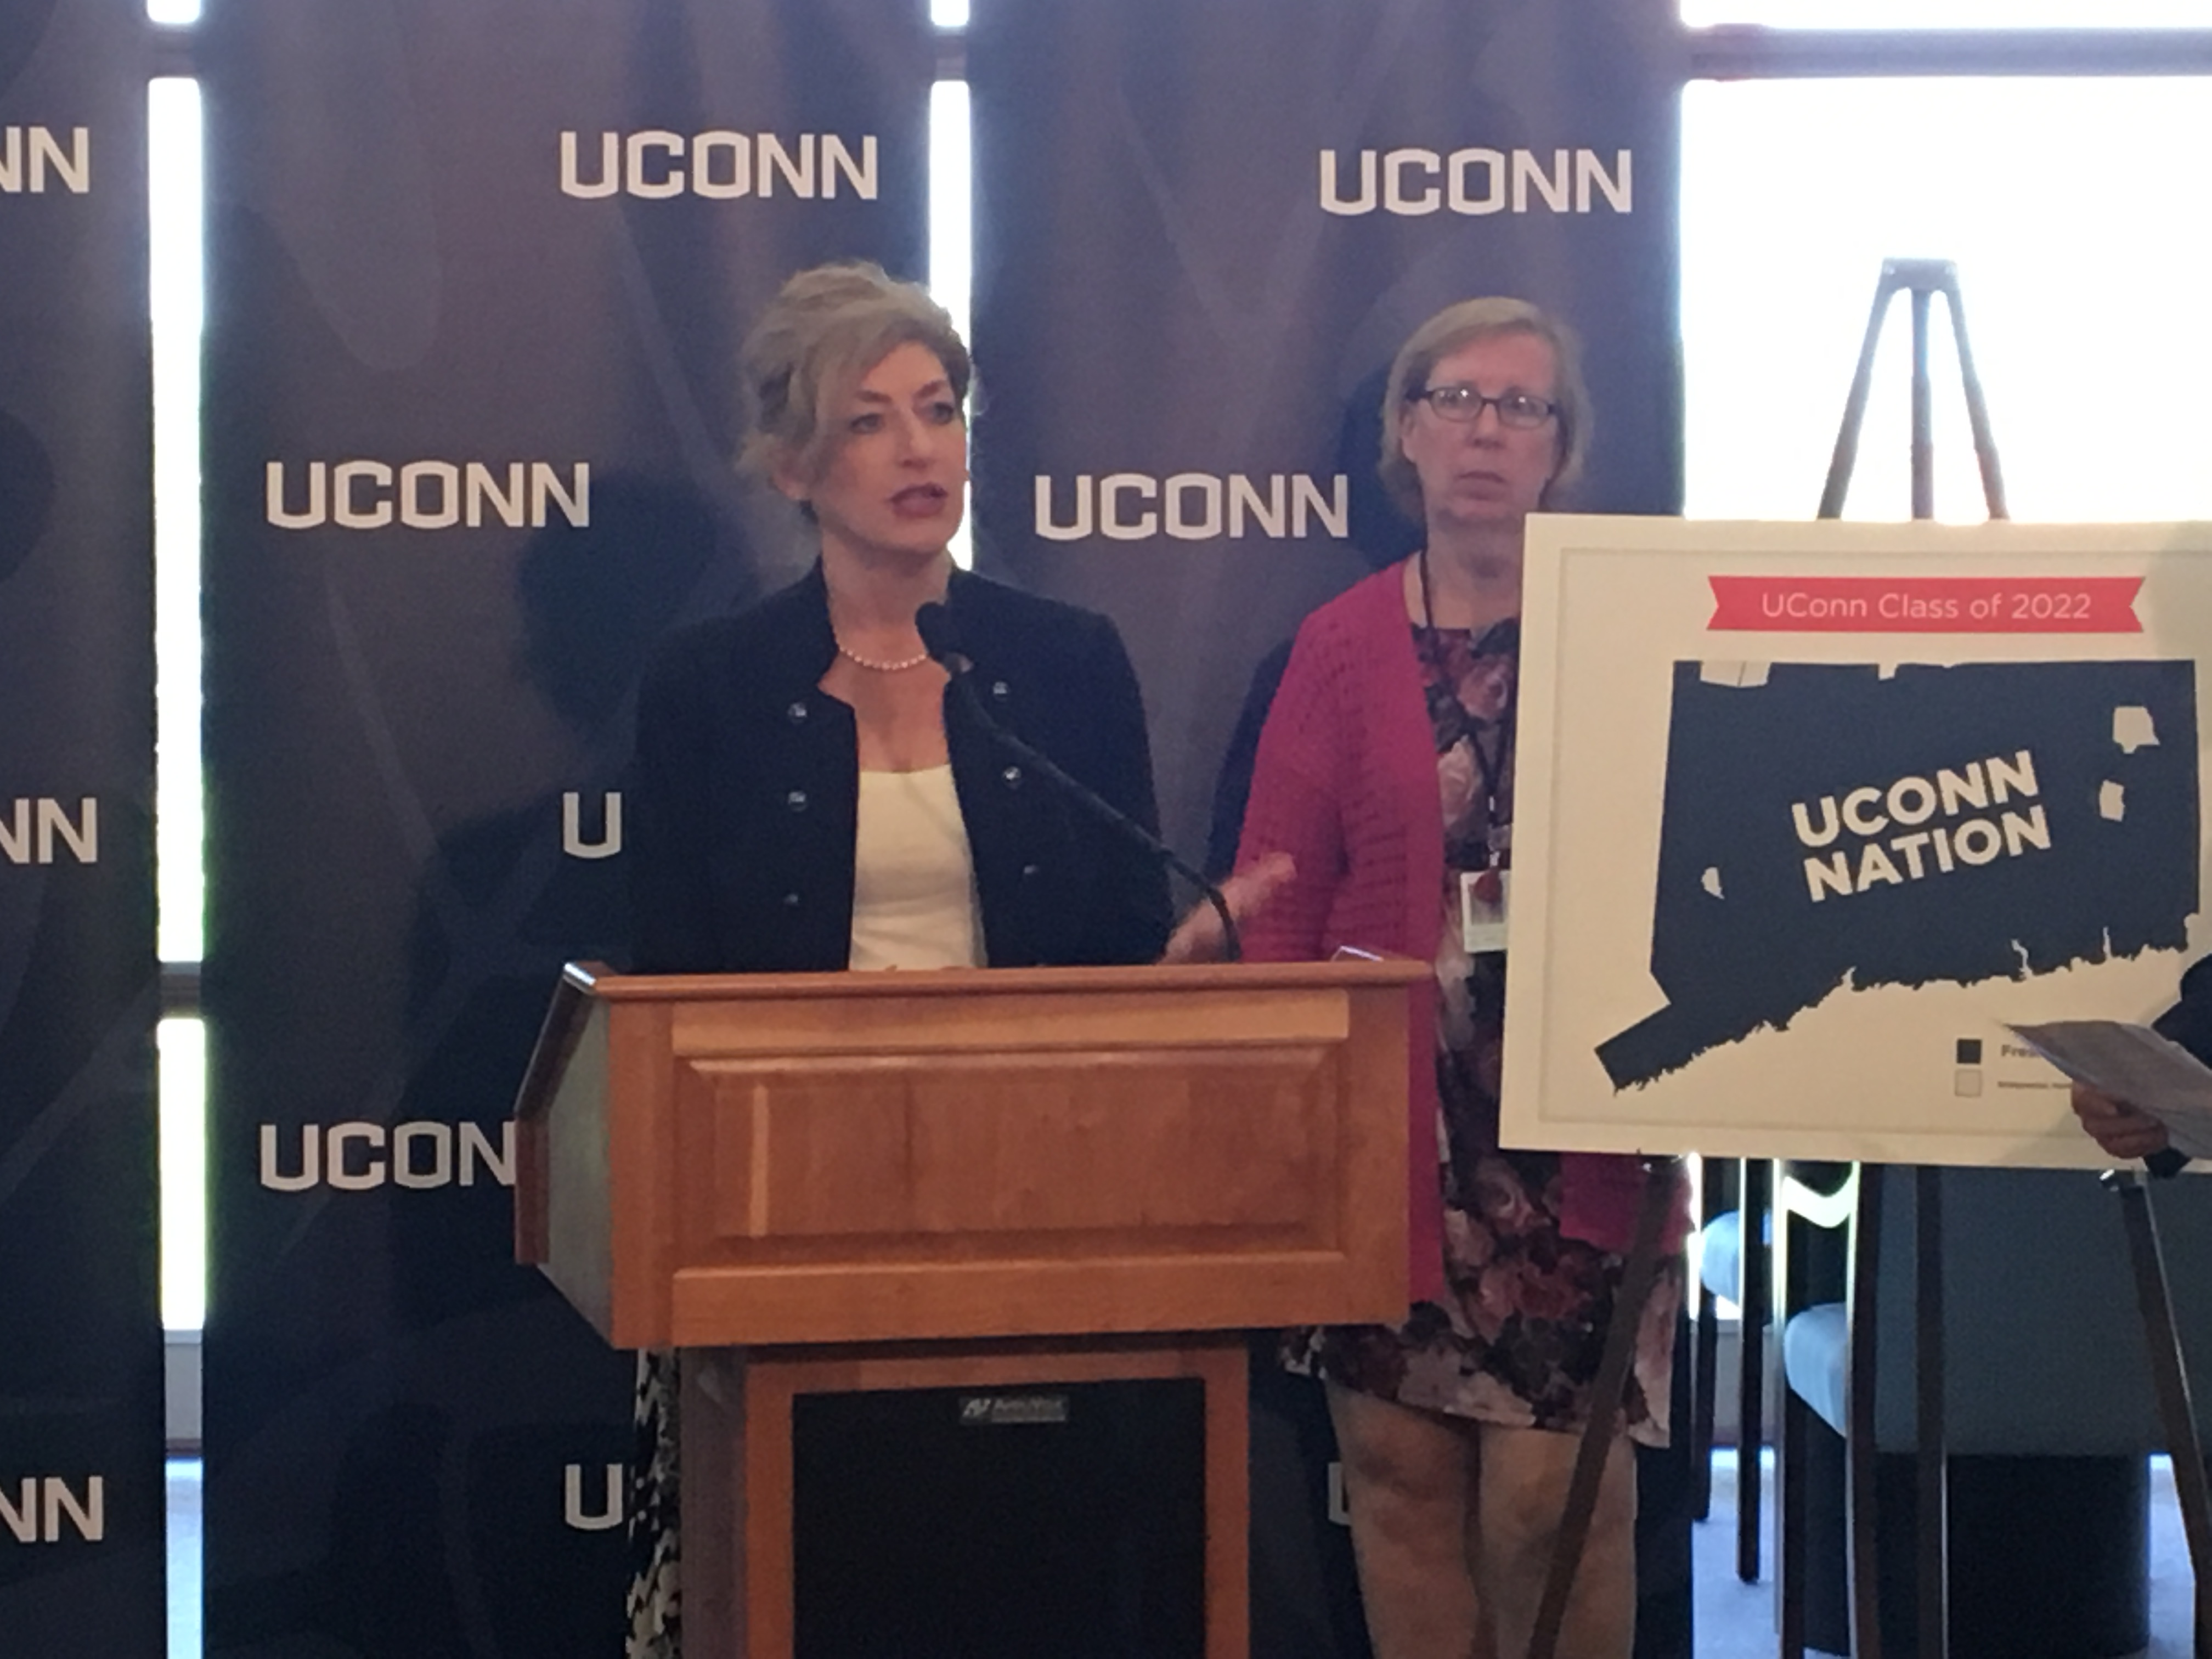 More Connecticut students are choosing UConn